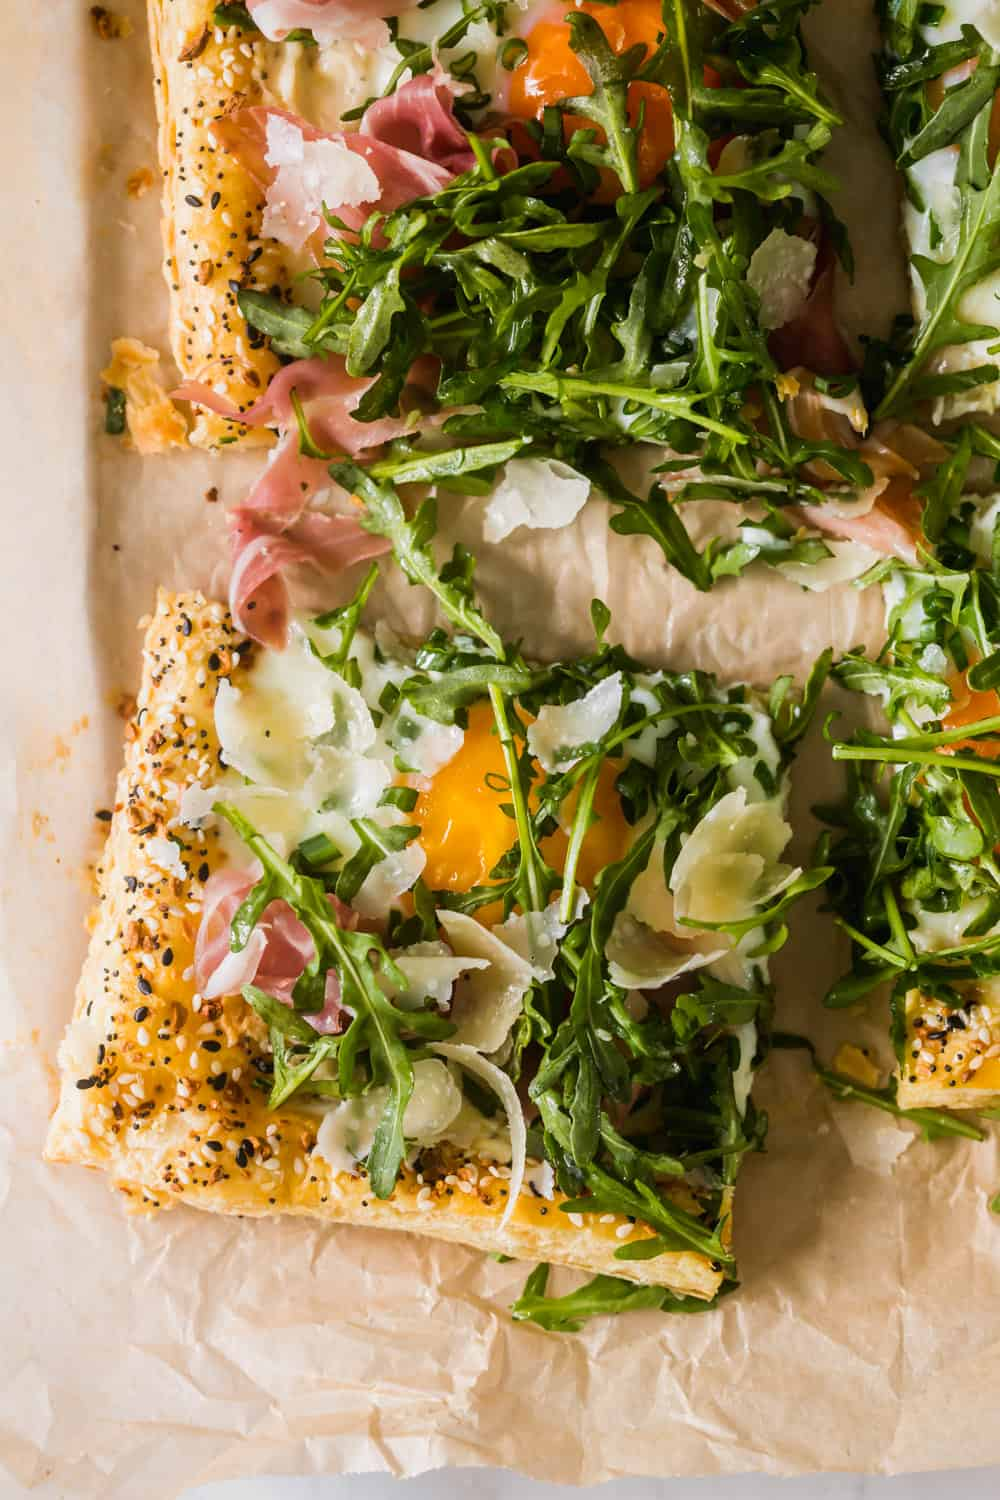 close up on a slice of baked puff pastry with a baked egg, prosciutto, and arugula on top